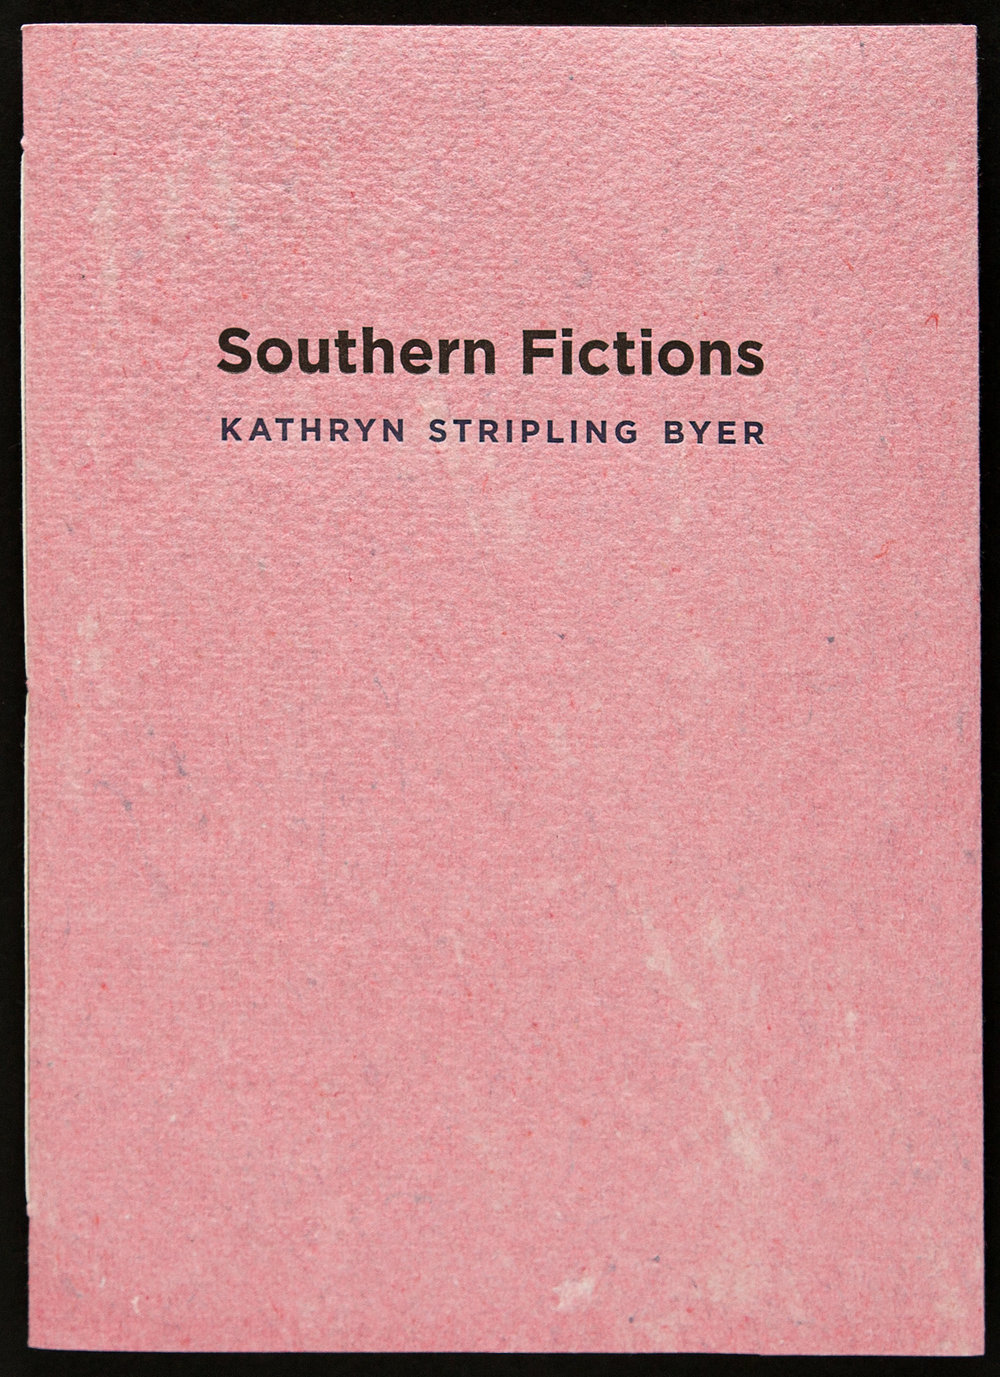 A book of sonnets by the former poet laureate looking back at growing up in rural Georgia during the Jim Crow era. The fiirst sonnet mentions how she hated how her father used to fly the Confederate battle flag—so we cut up several battle flags and re-purposed them into handmade paper covers for this edition of 200 books.